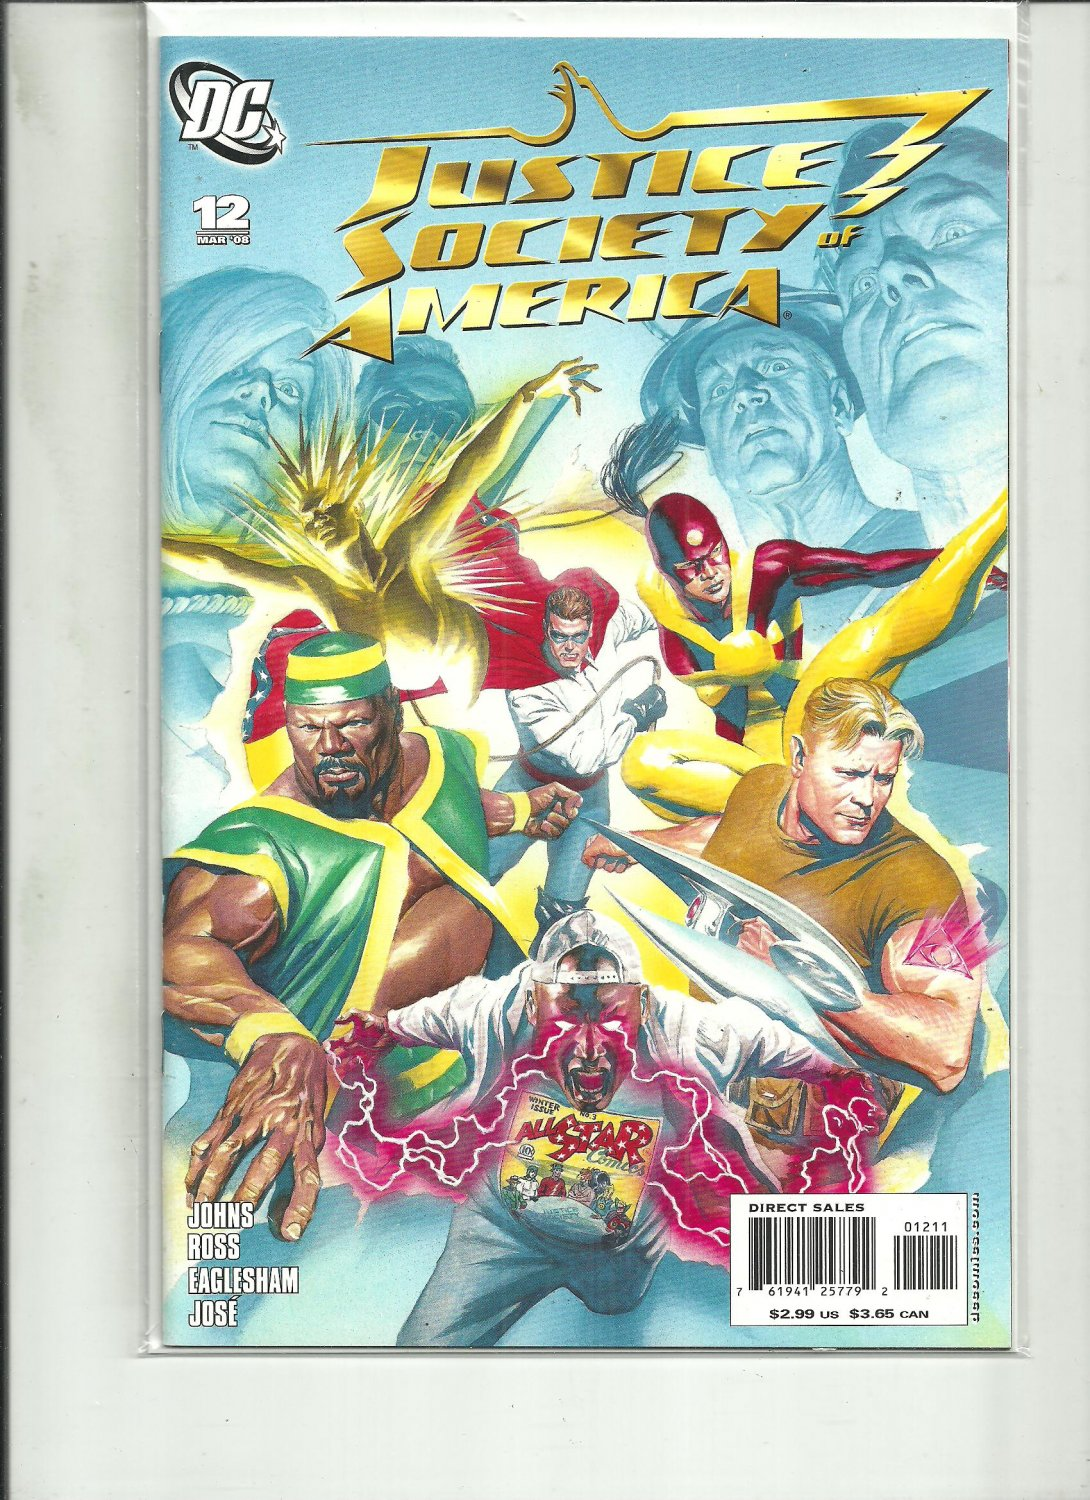 JUSTICE SOCIETY OF AMERICA #12 DC COMICS 2008 JOHNS NM